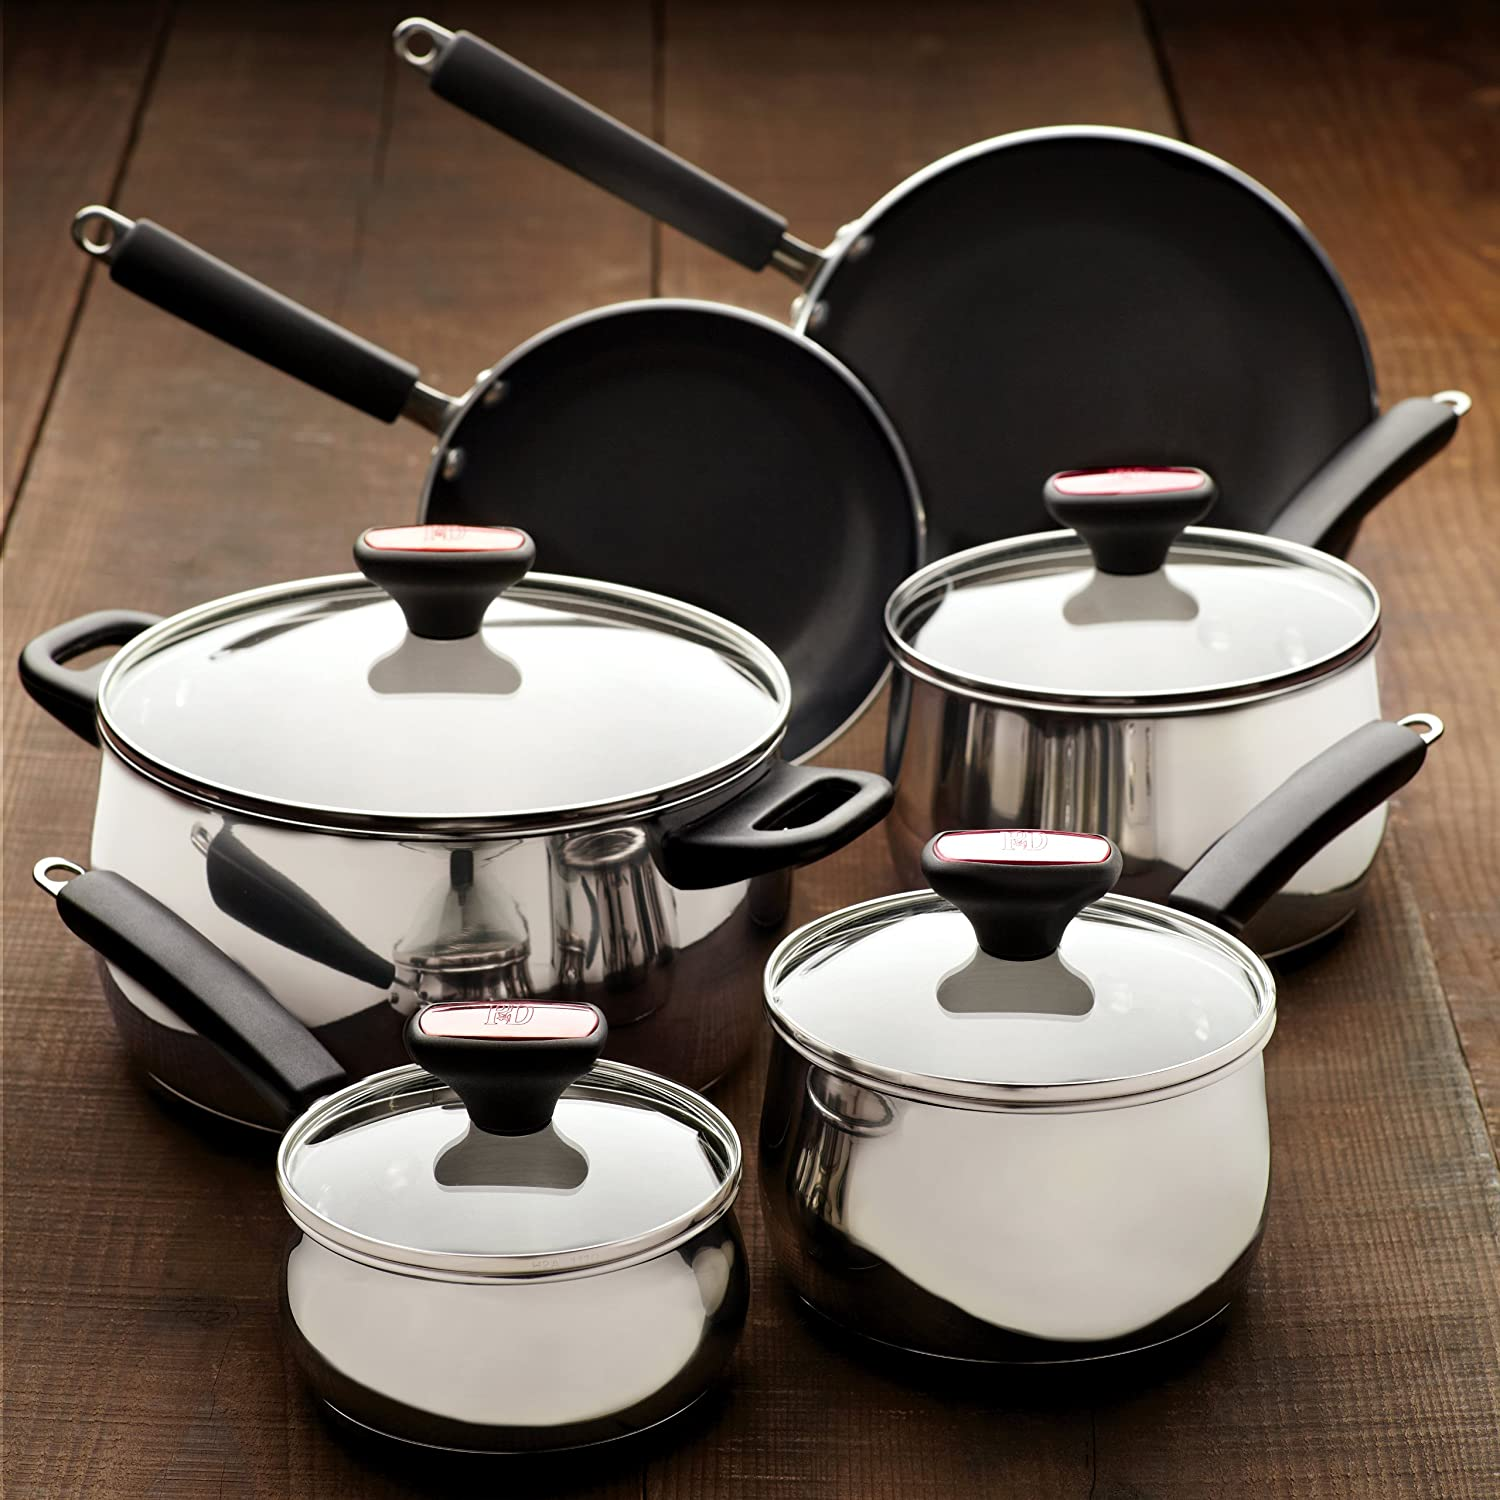 12 piece nonstick cookware set stainless steel aluminum for Kitchen set aluminium royal